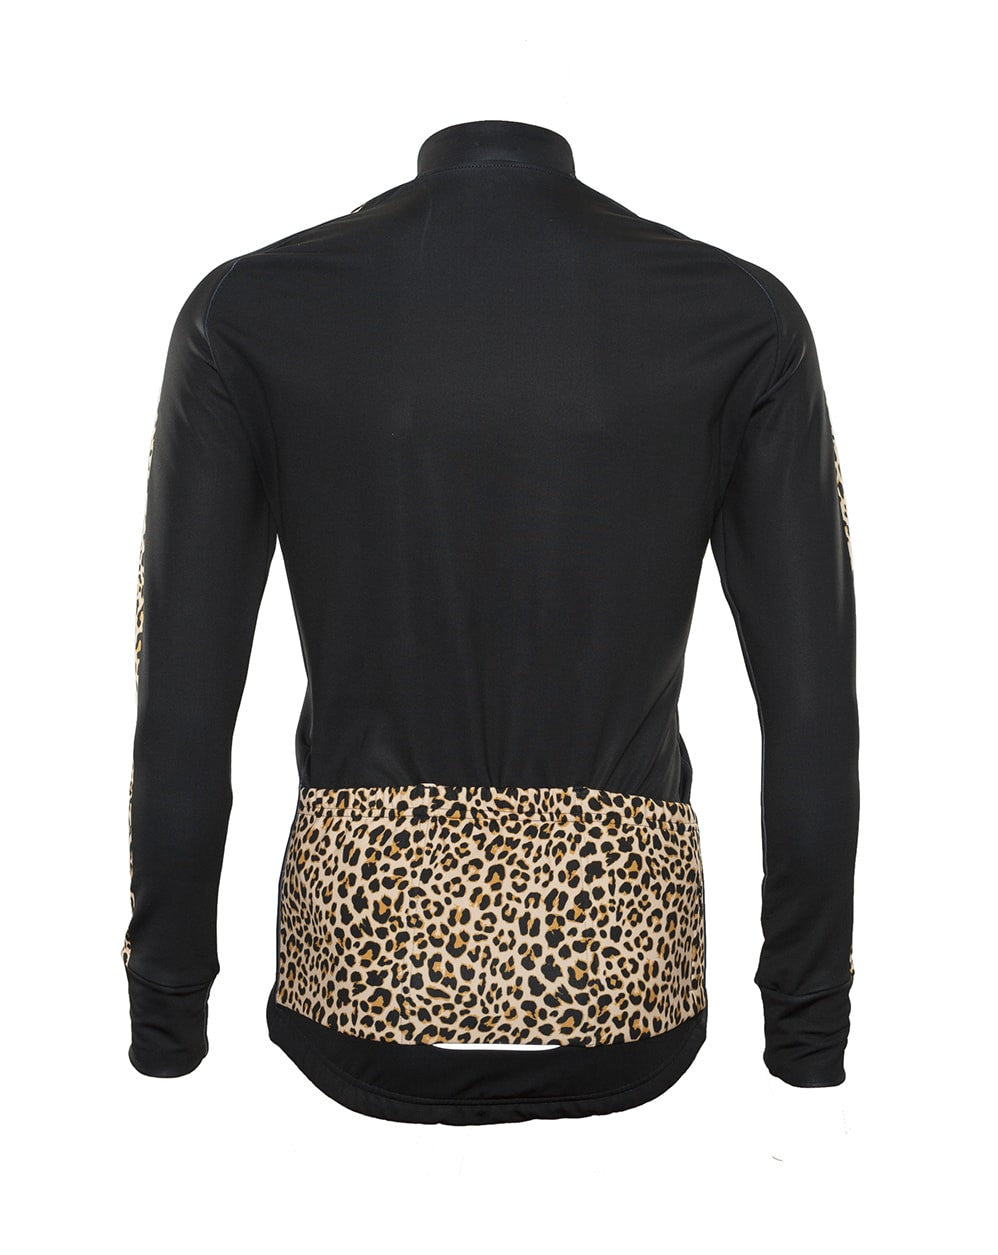 Hackney GT Windtex unisex winter Leopard jacket back